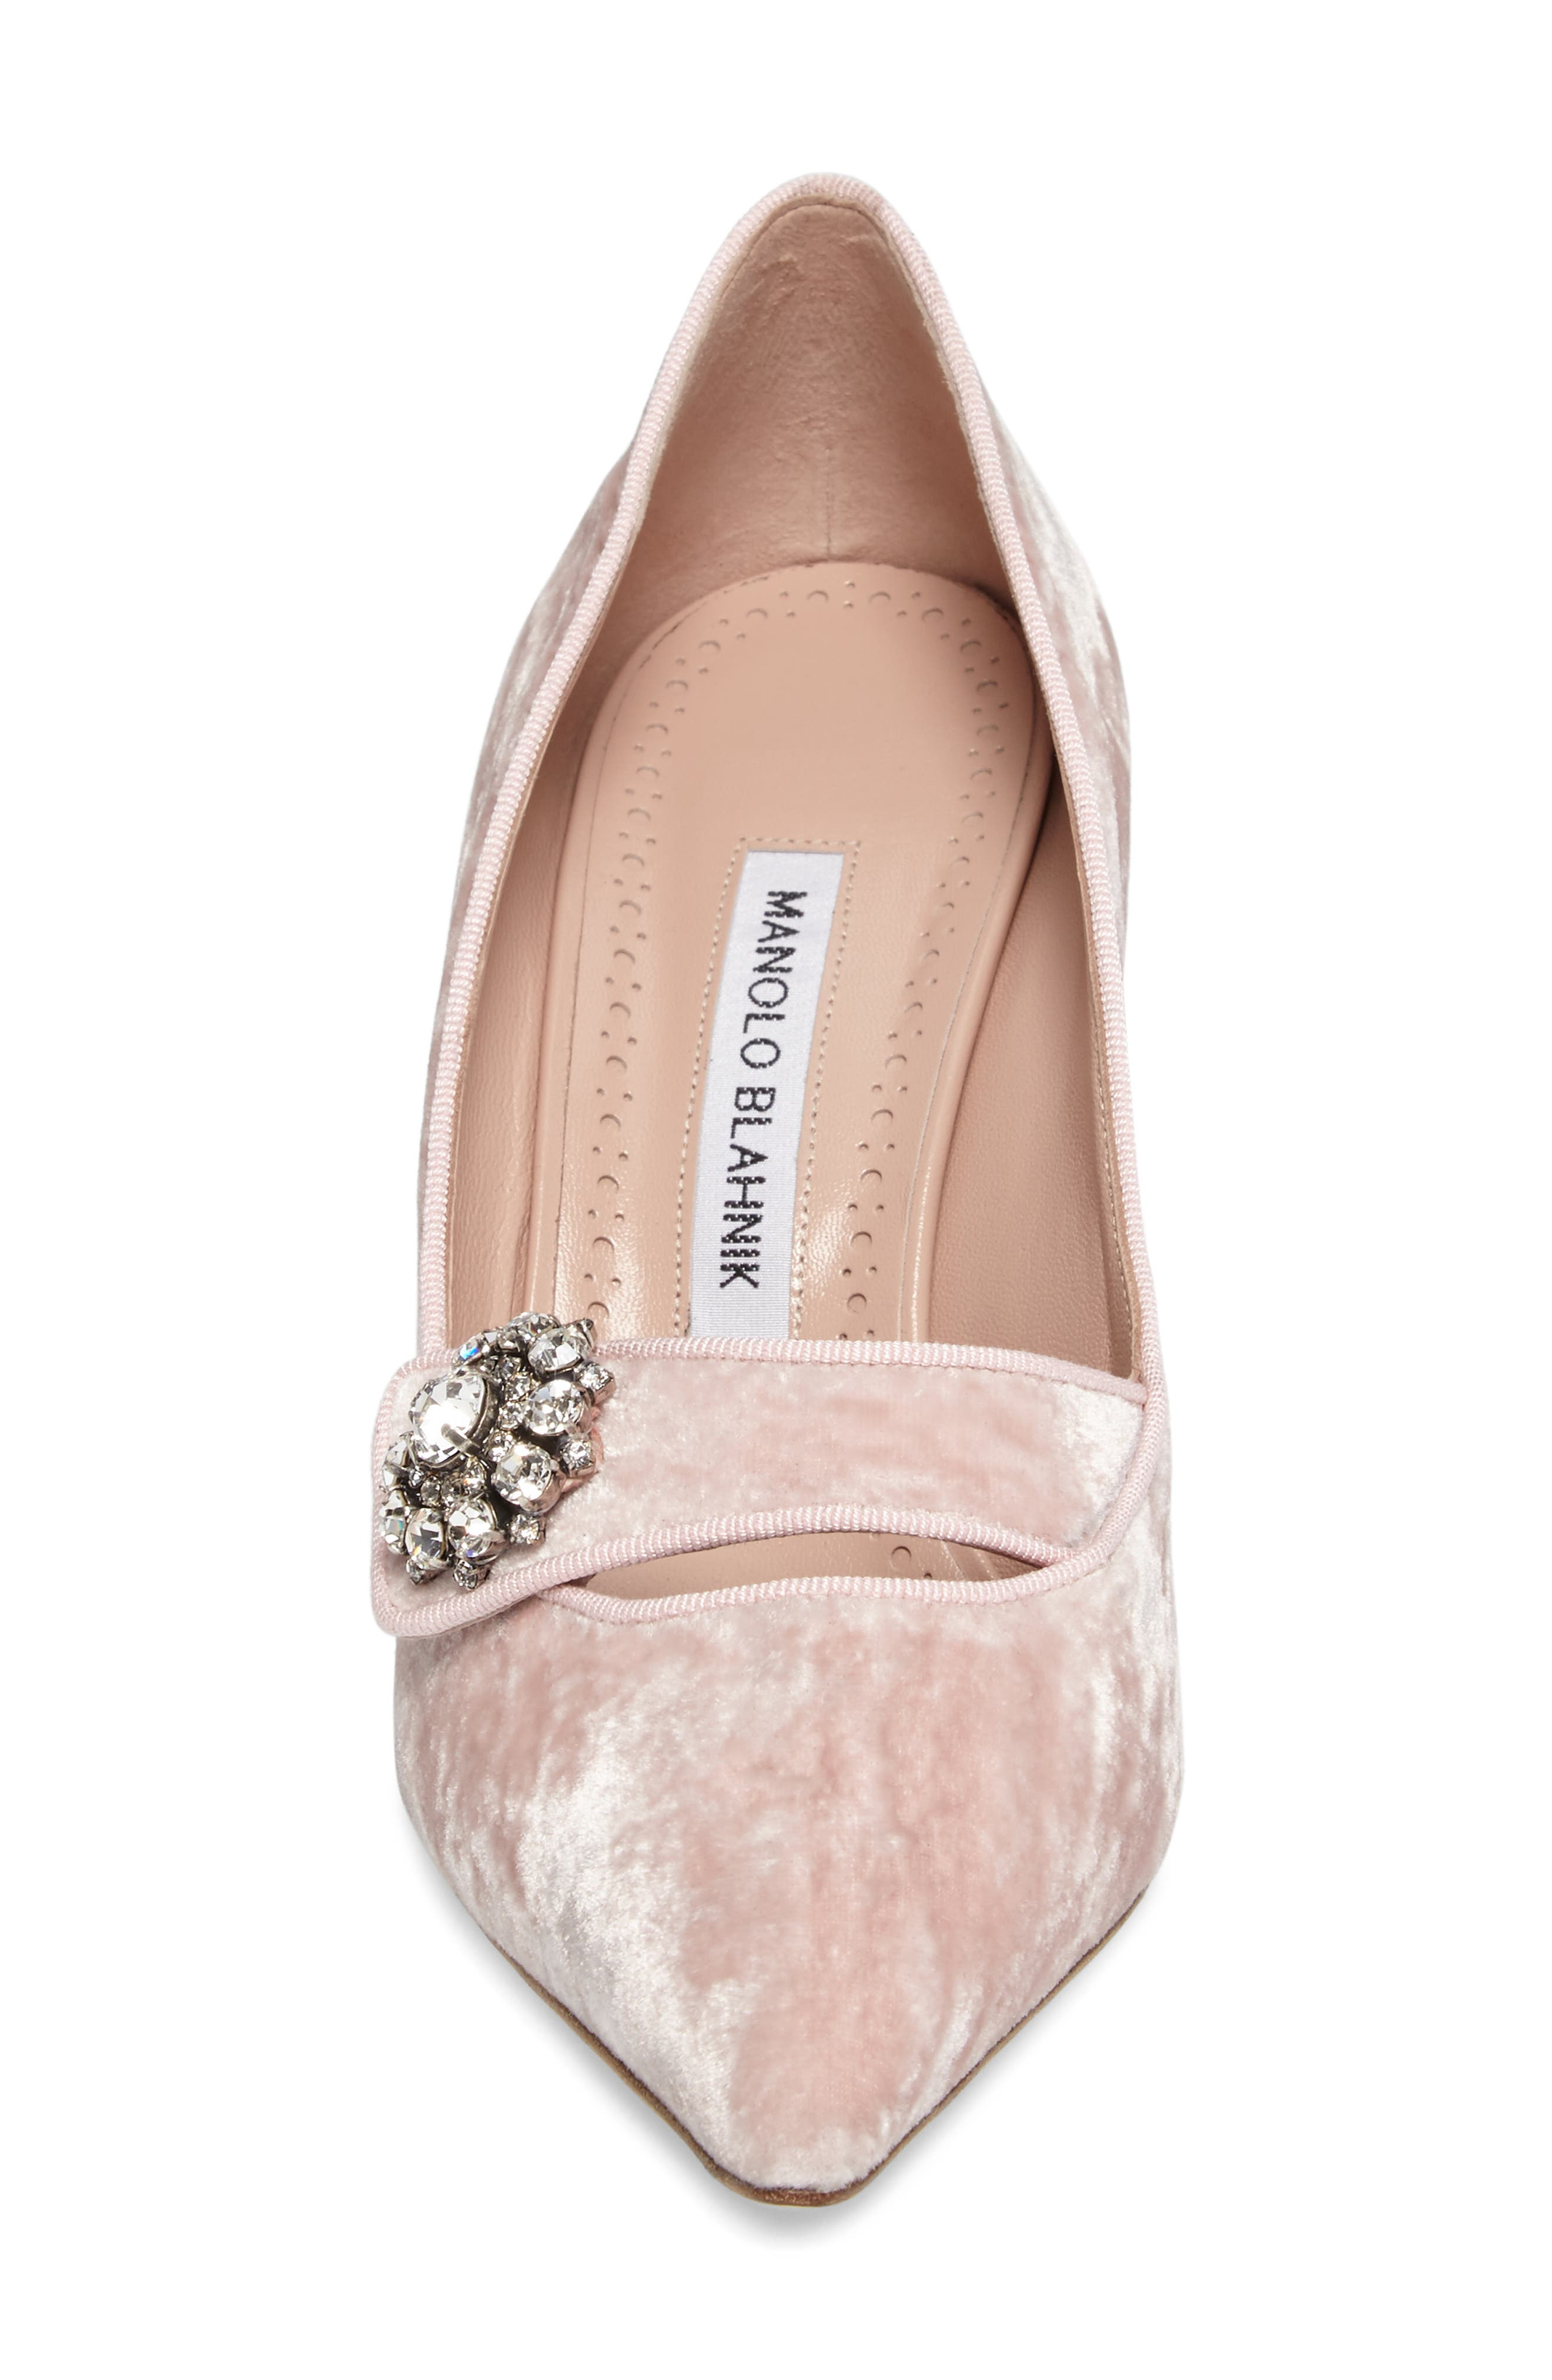 Decebalo Pump,                             Alternate thumbnail 4, color,                             Blush Velvet